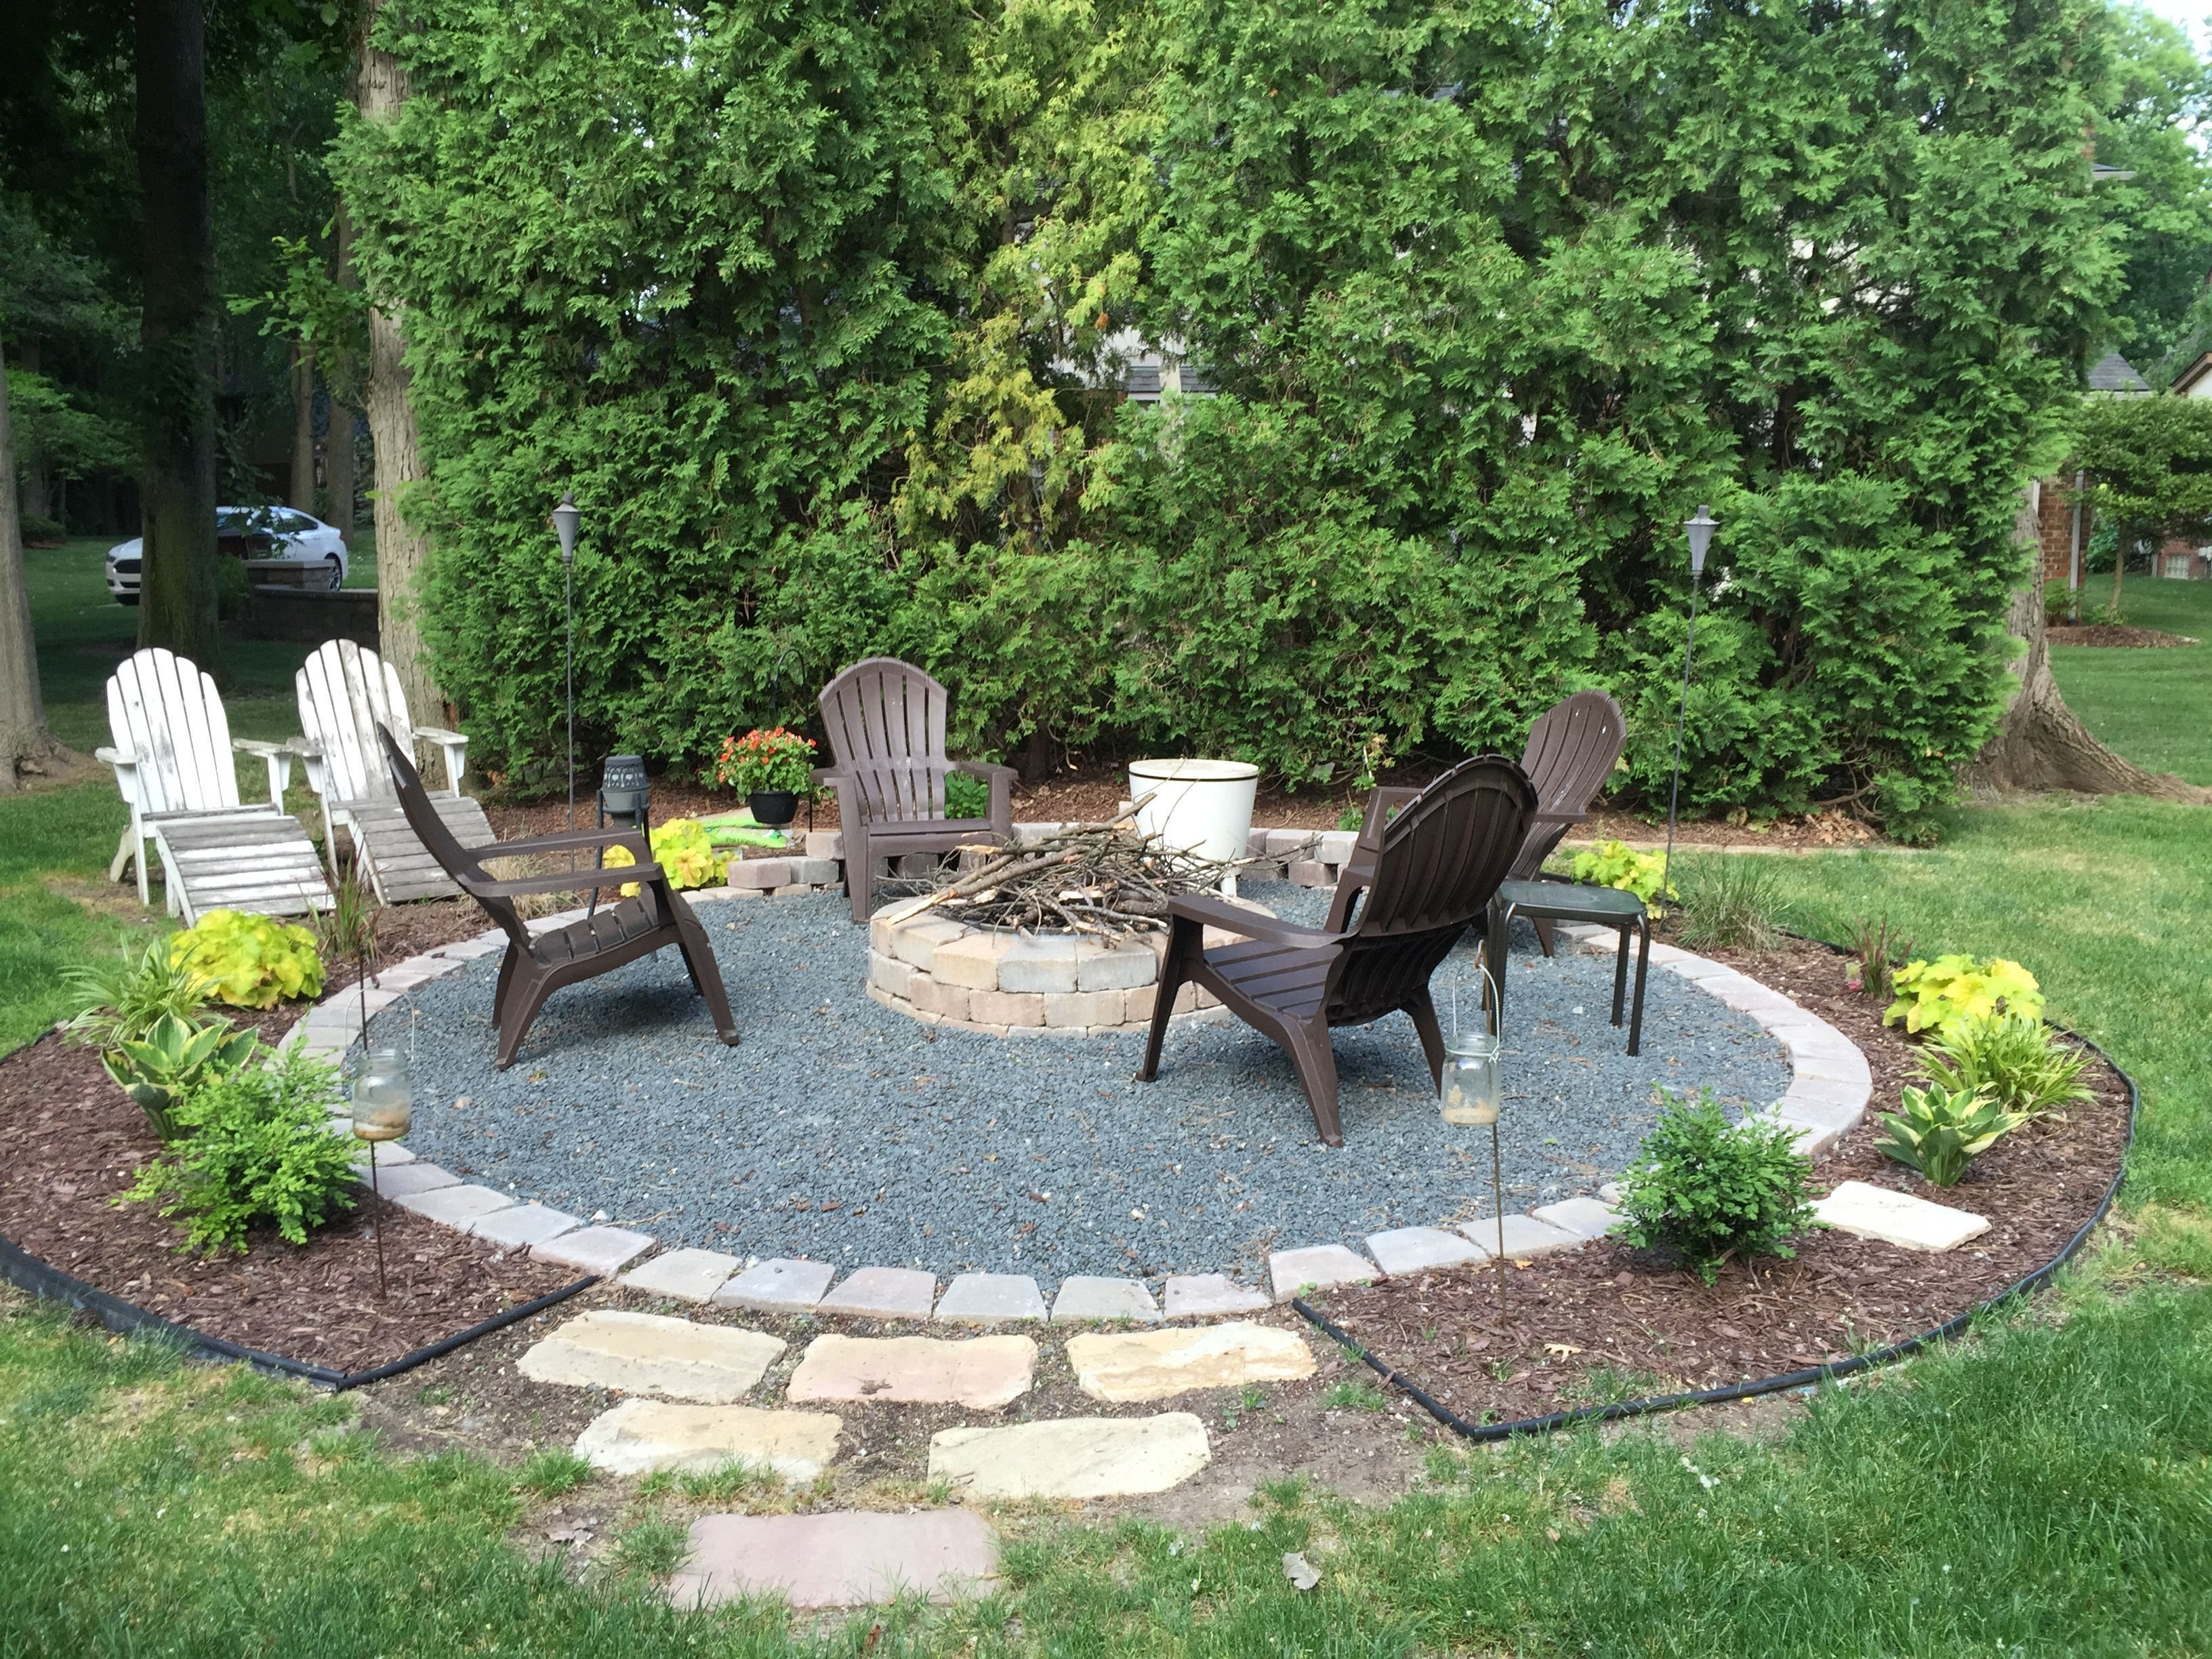 64 Diy Small Firepit Ideas For Outdoor To Wram Family Back Yard in Backyard Firepit Ideas